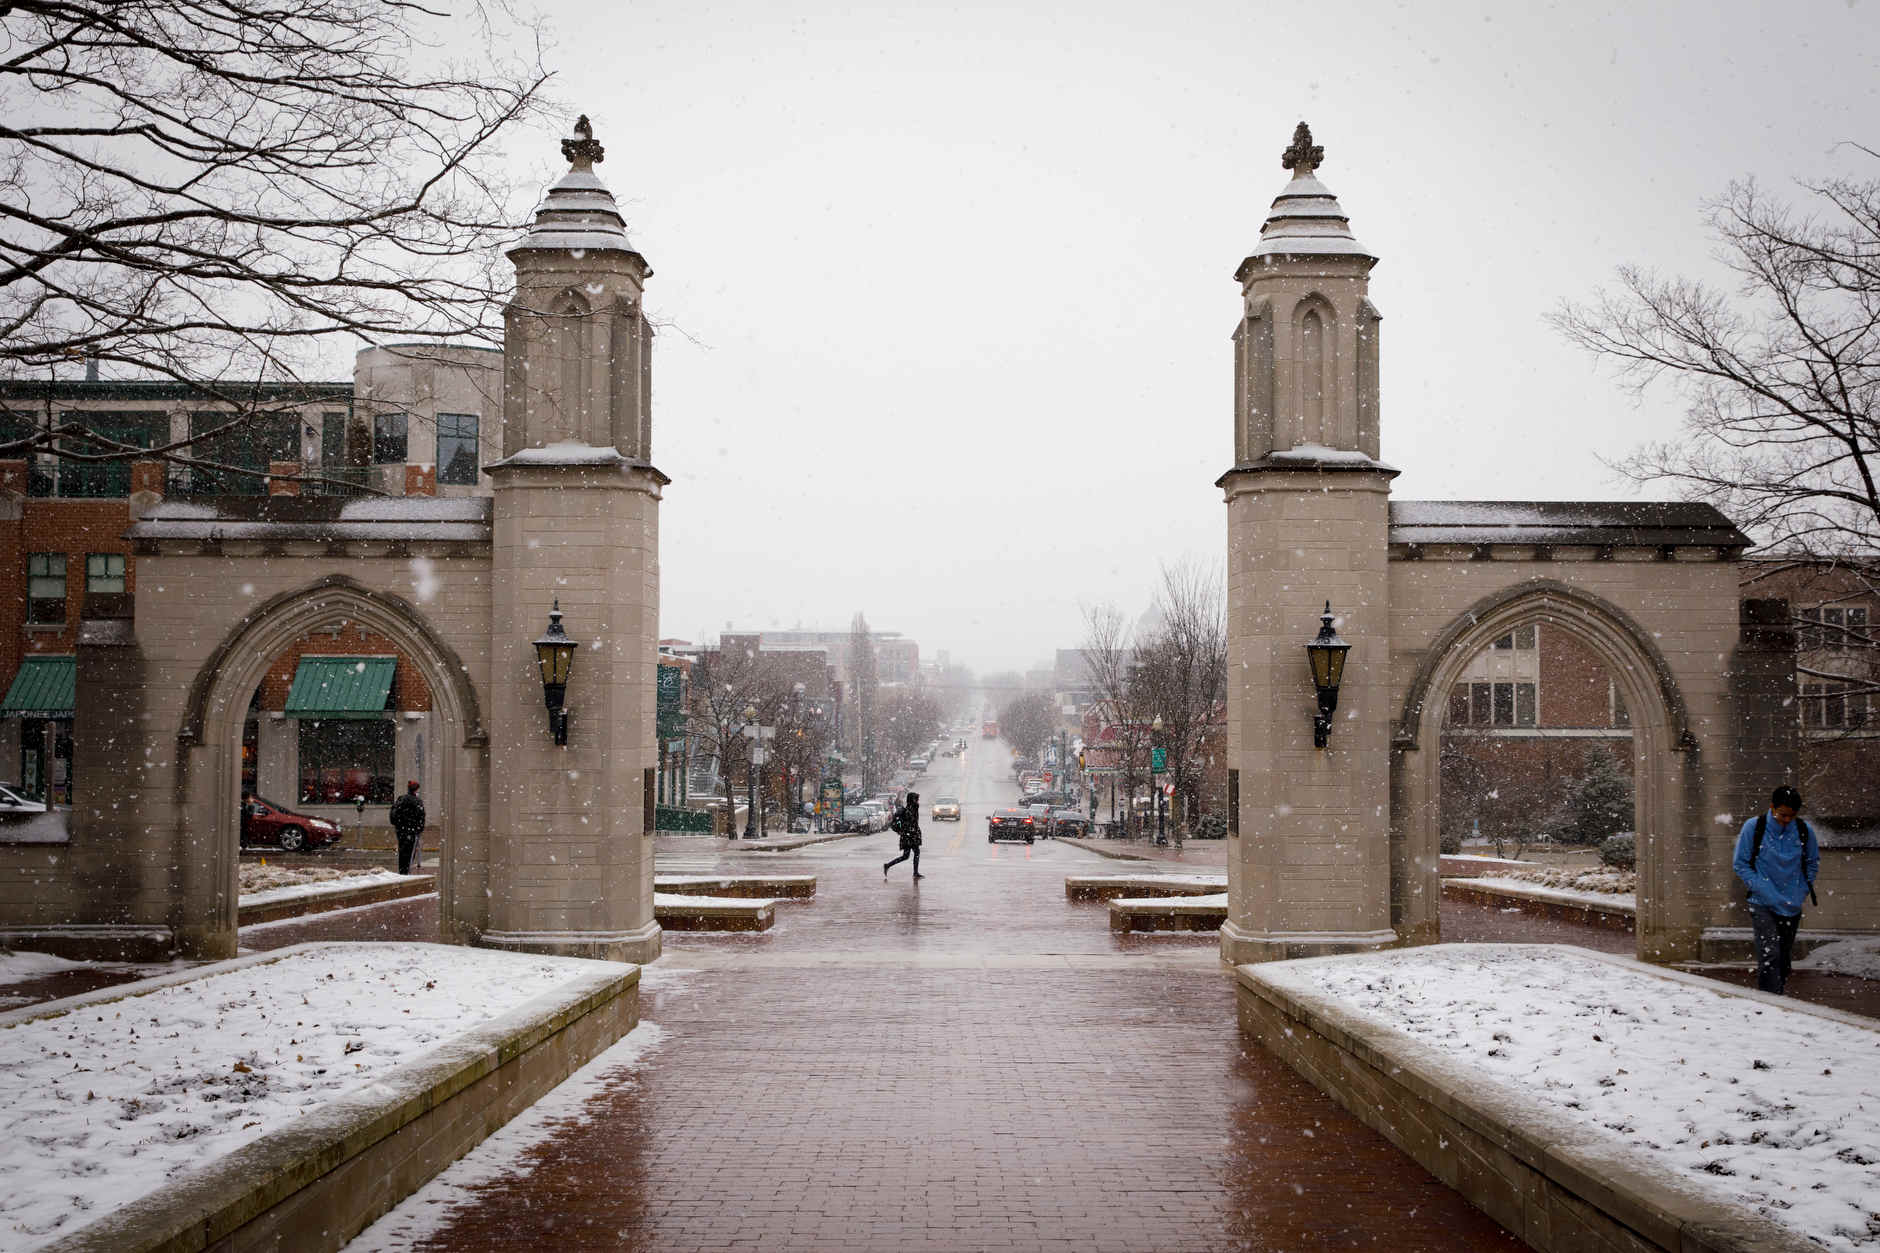 Snow falls in front of the Sample Gates and Kirkwood Avenue at IU Bloomington on Thursday, March 7, 2019. (James Brosher/Indiana University)